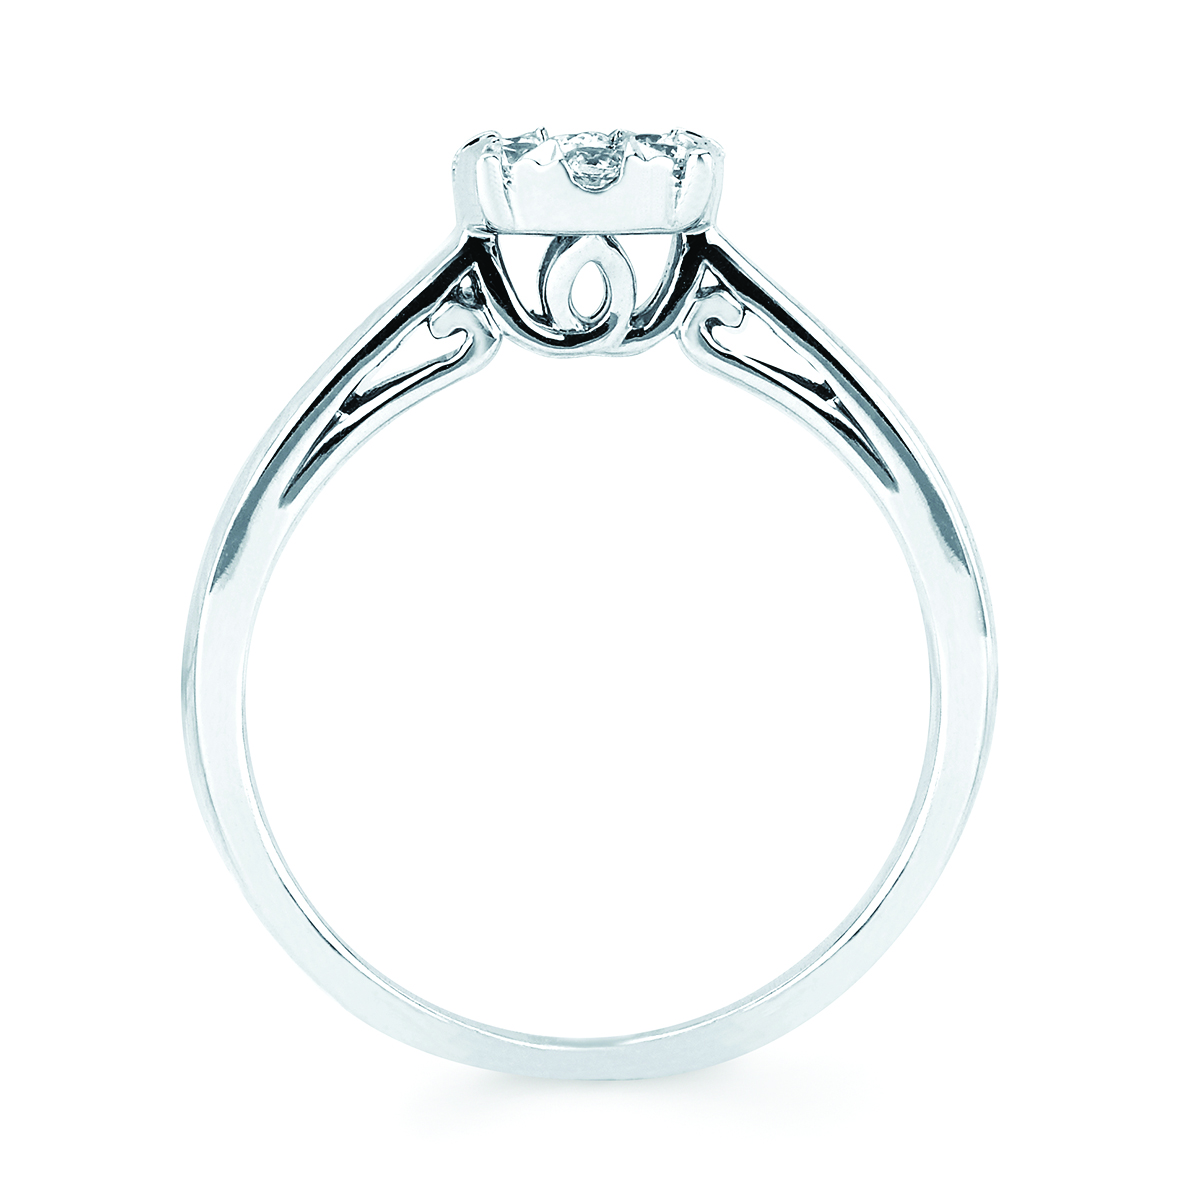 14k White Gold Ring Image 4 Midtown Diamonds Reno, NV